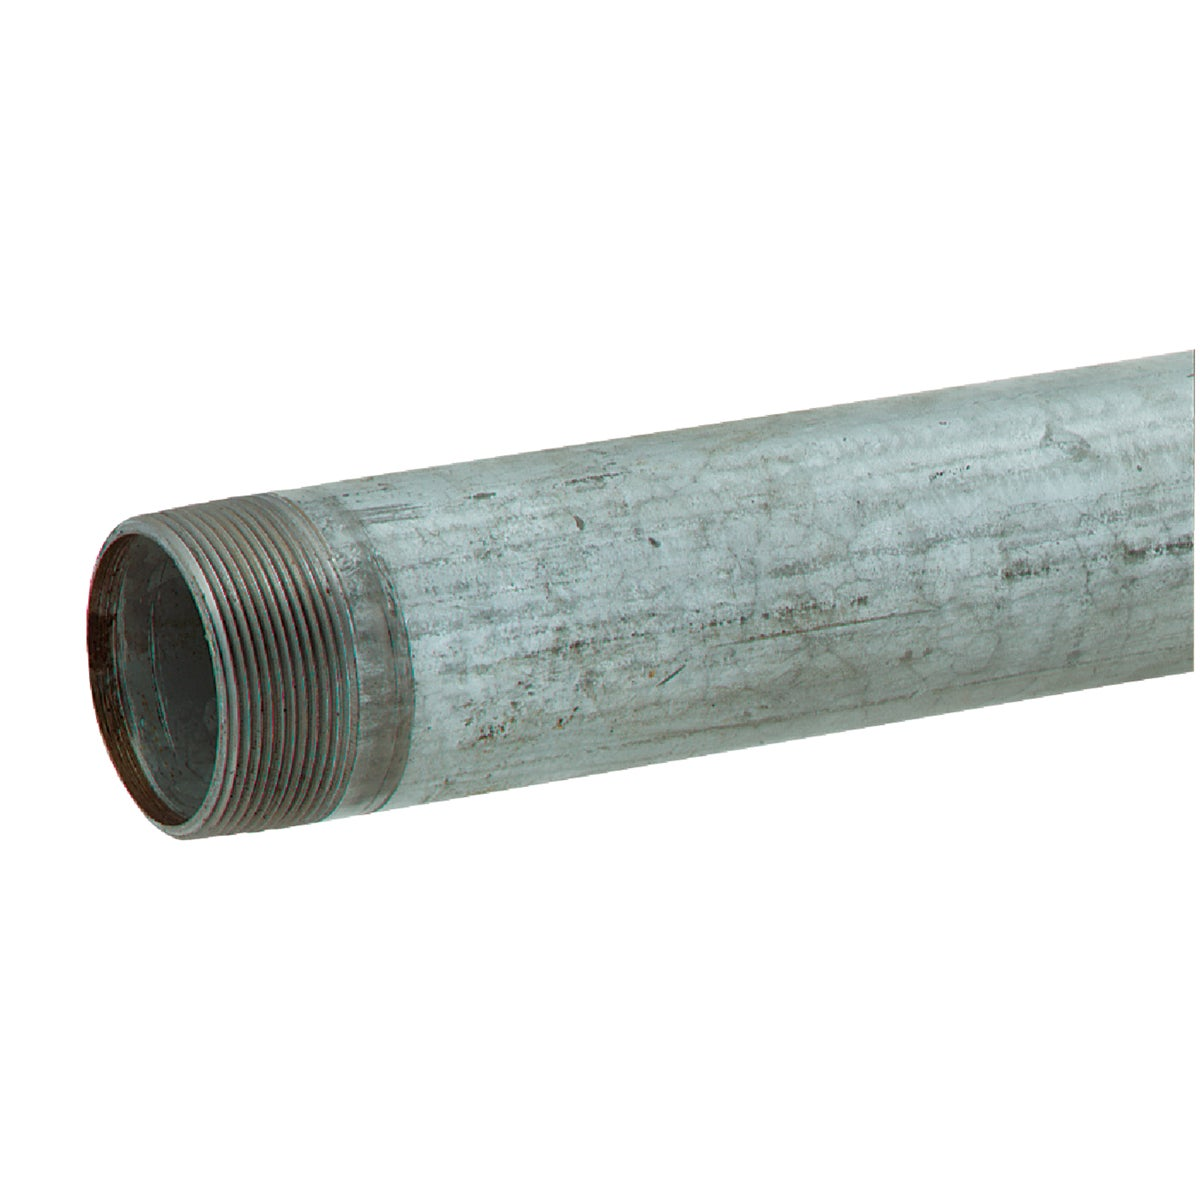 2X18 GALV RDI-CT PIPE - 2X18 by Southland Pipe Nippl